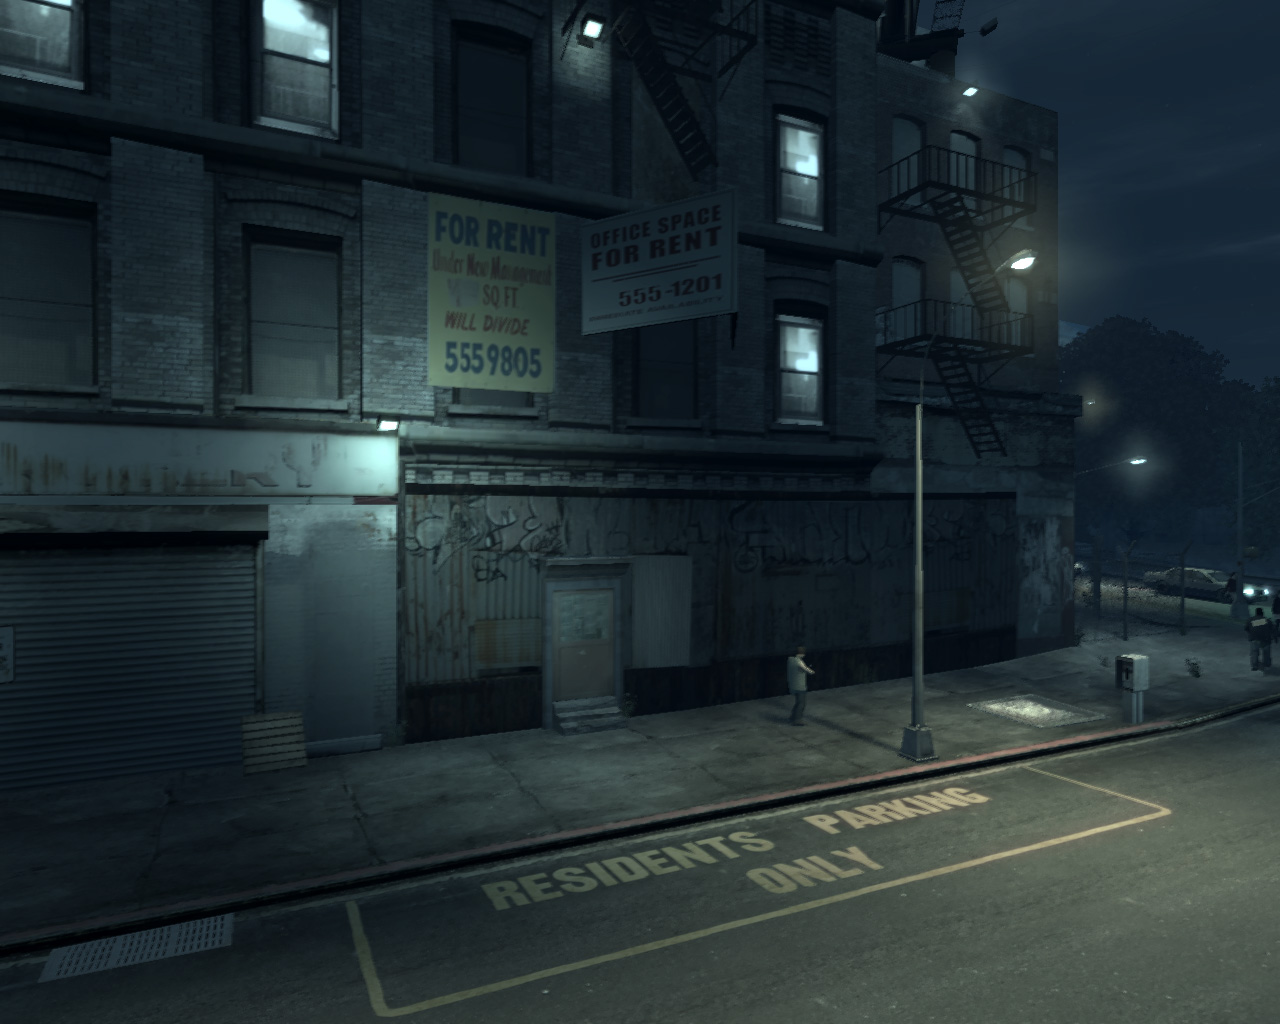 How To Park Cars In Garage Sleeping Dogs